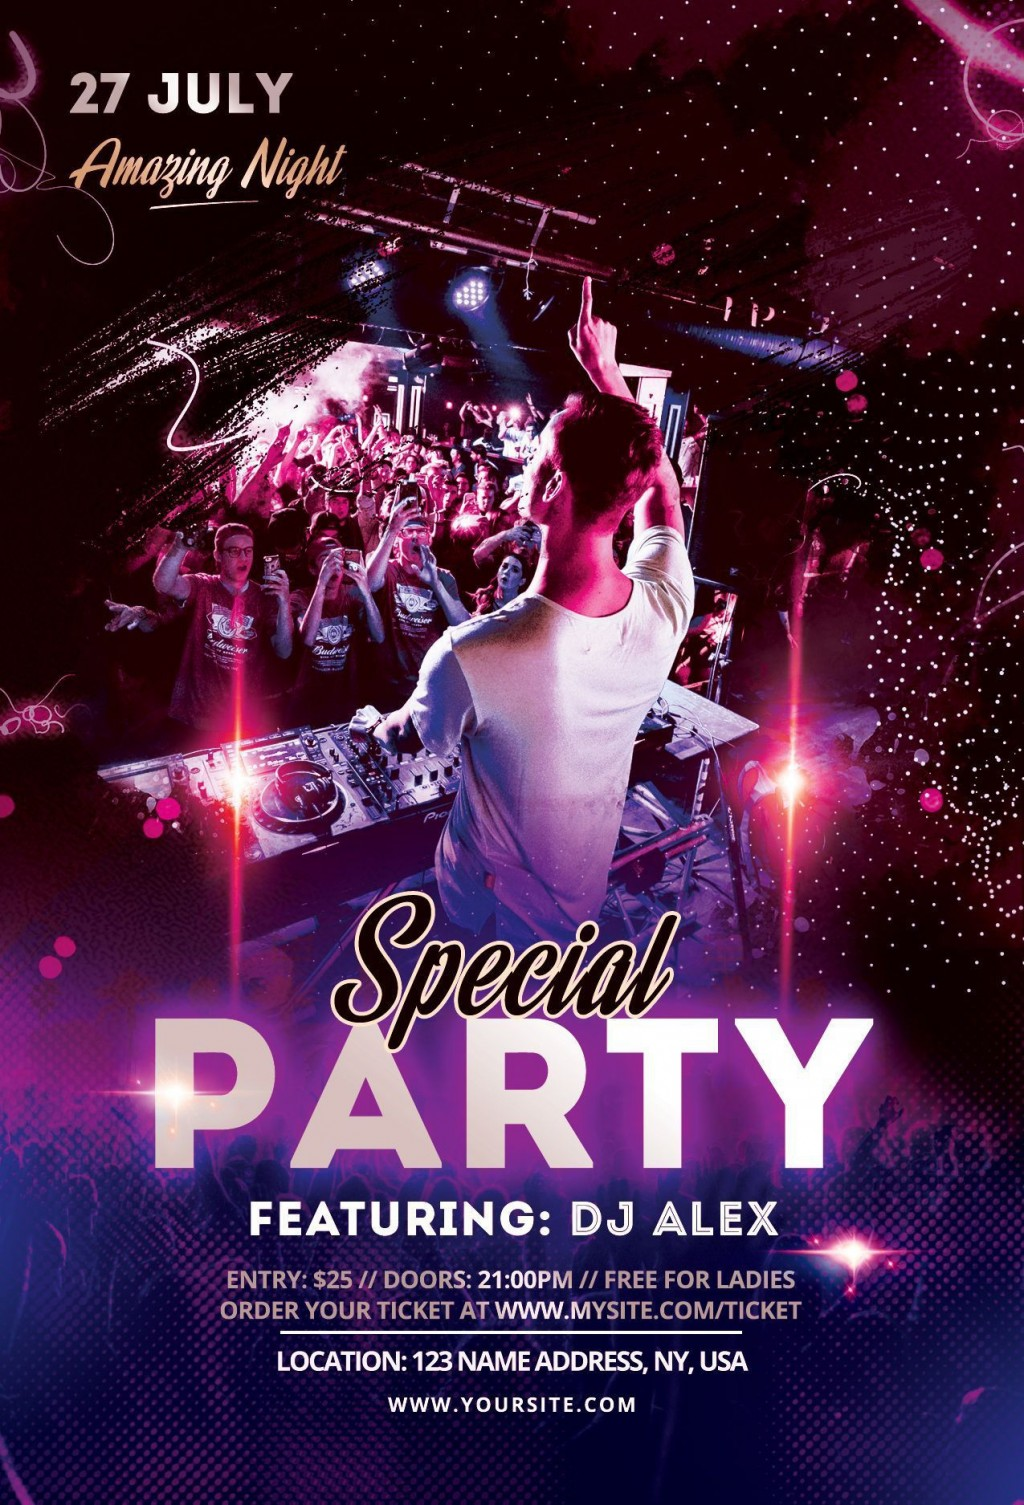 001 Incredible Party Flyer Template Free Photoshop Highest Clarity  Birthday Psd Masquerade -Large